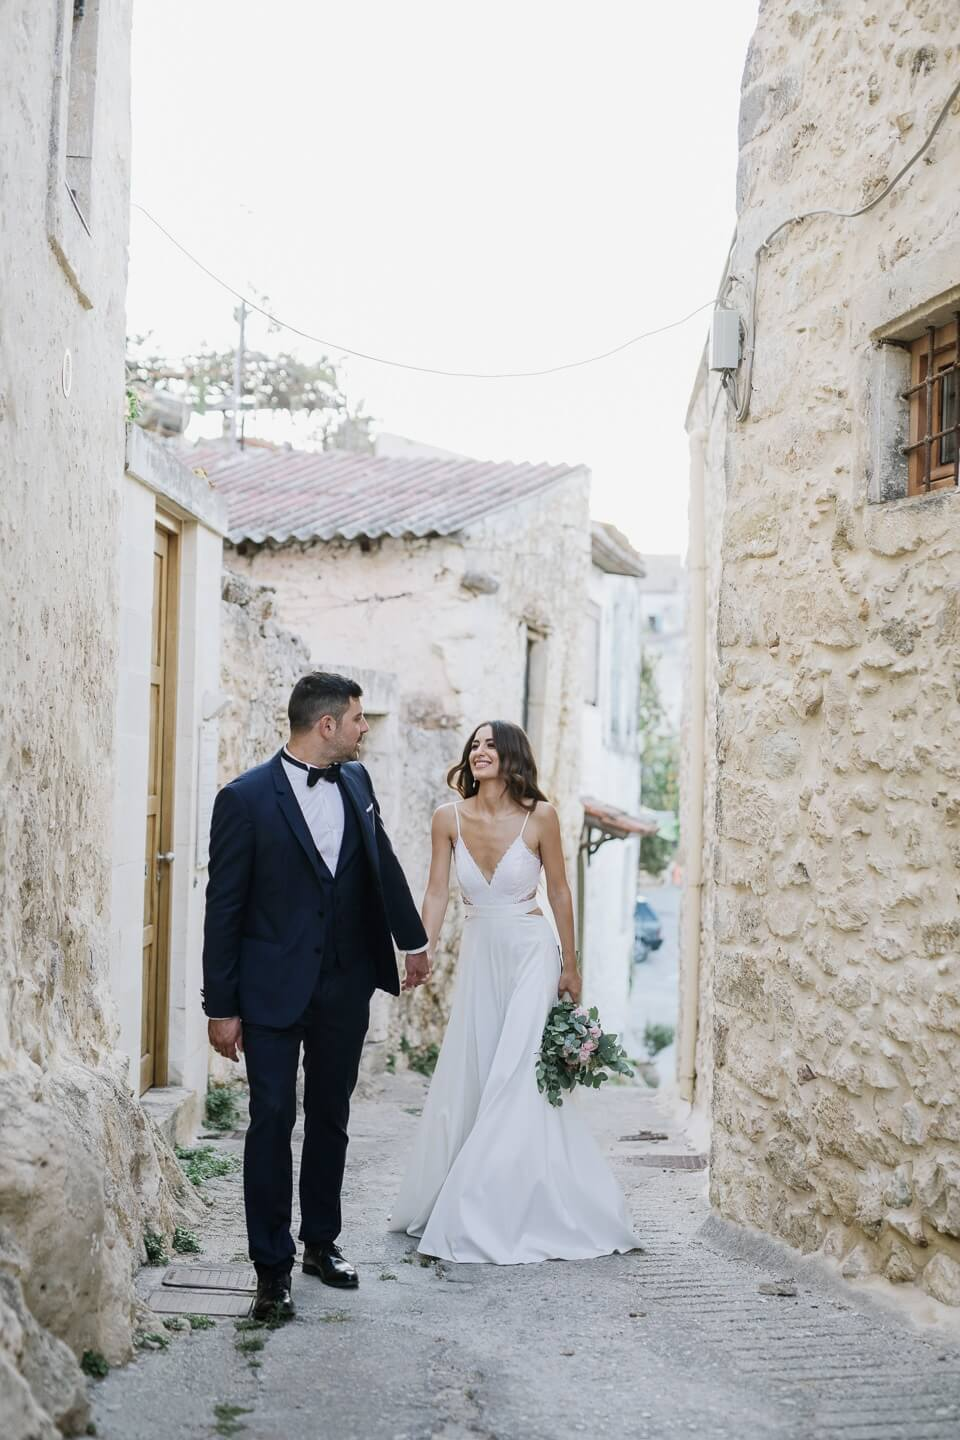 Irini Koronaki Professional Wedding Photographer Photography Crete Chania Greece